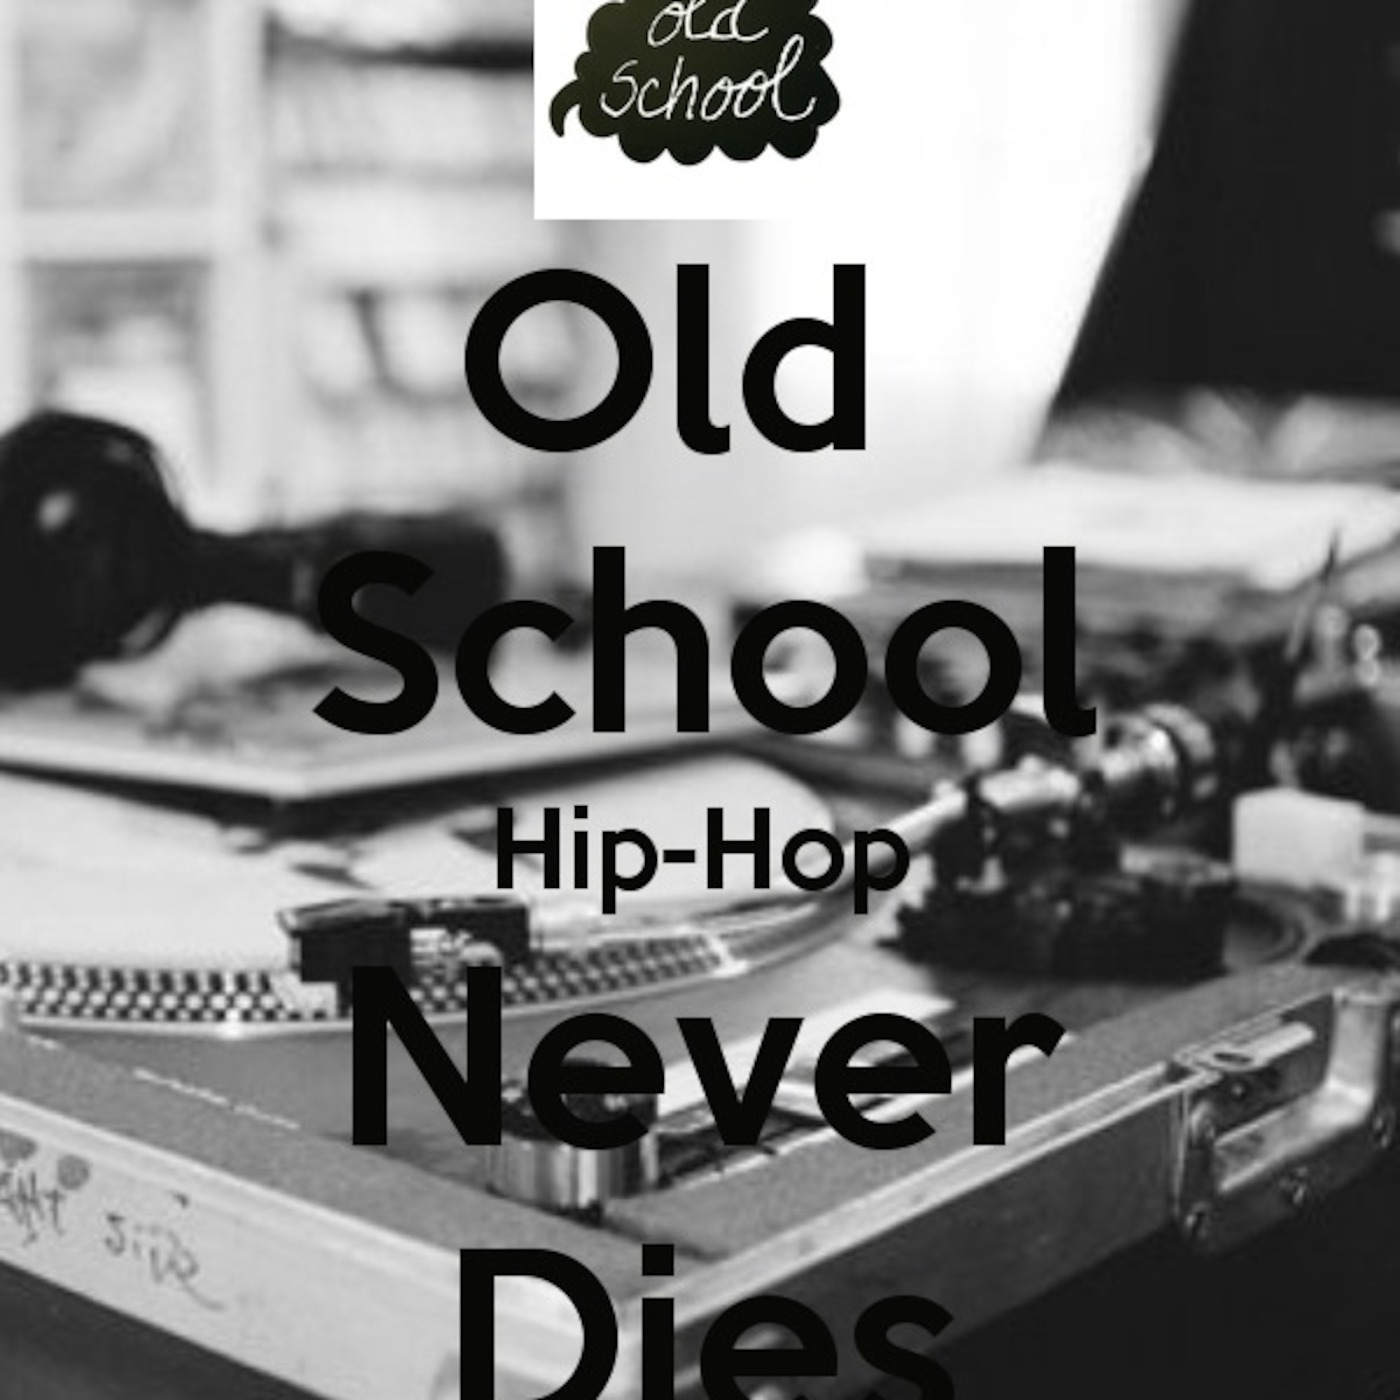 Quotes about Old school music (43 quotes)